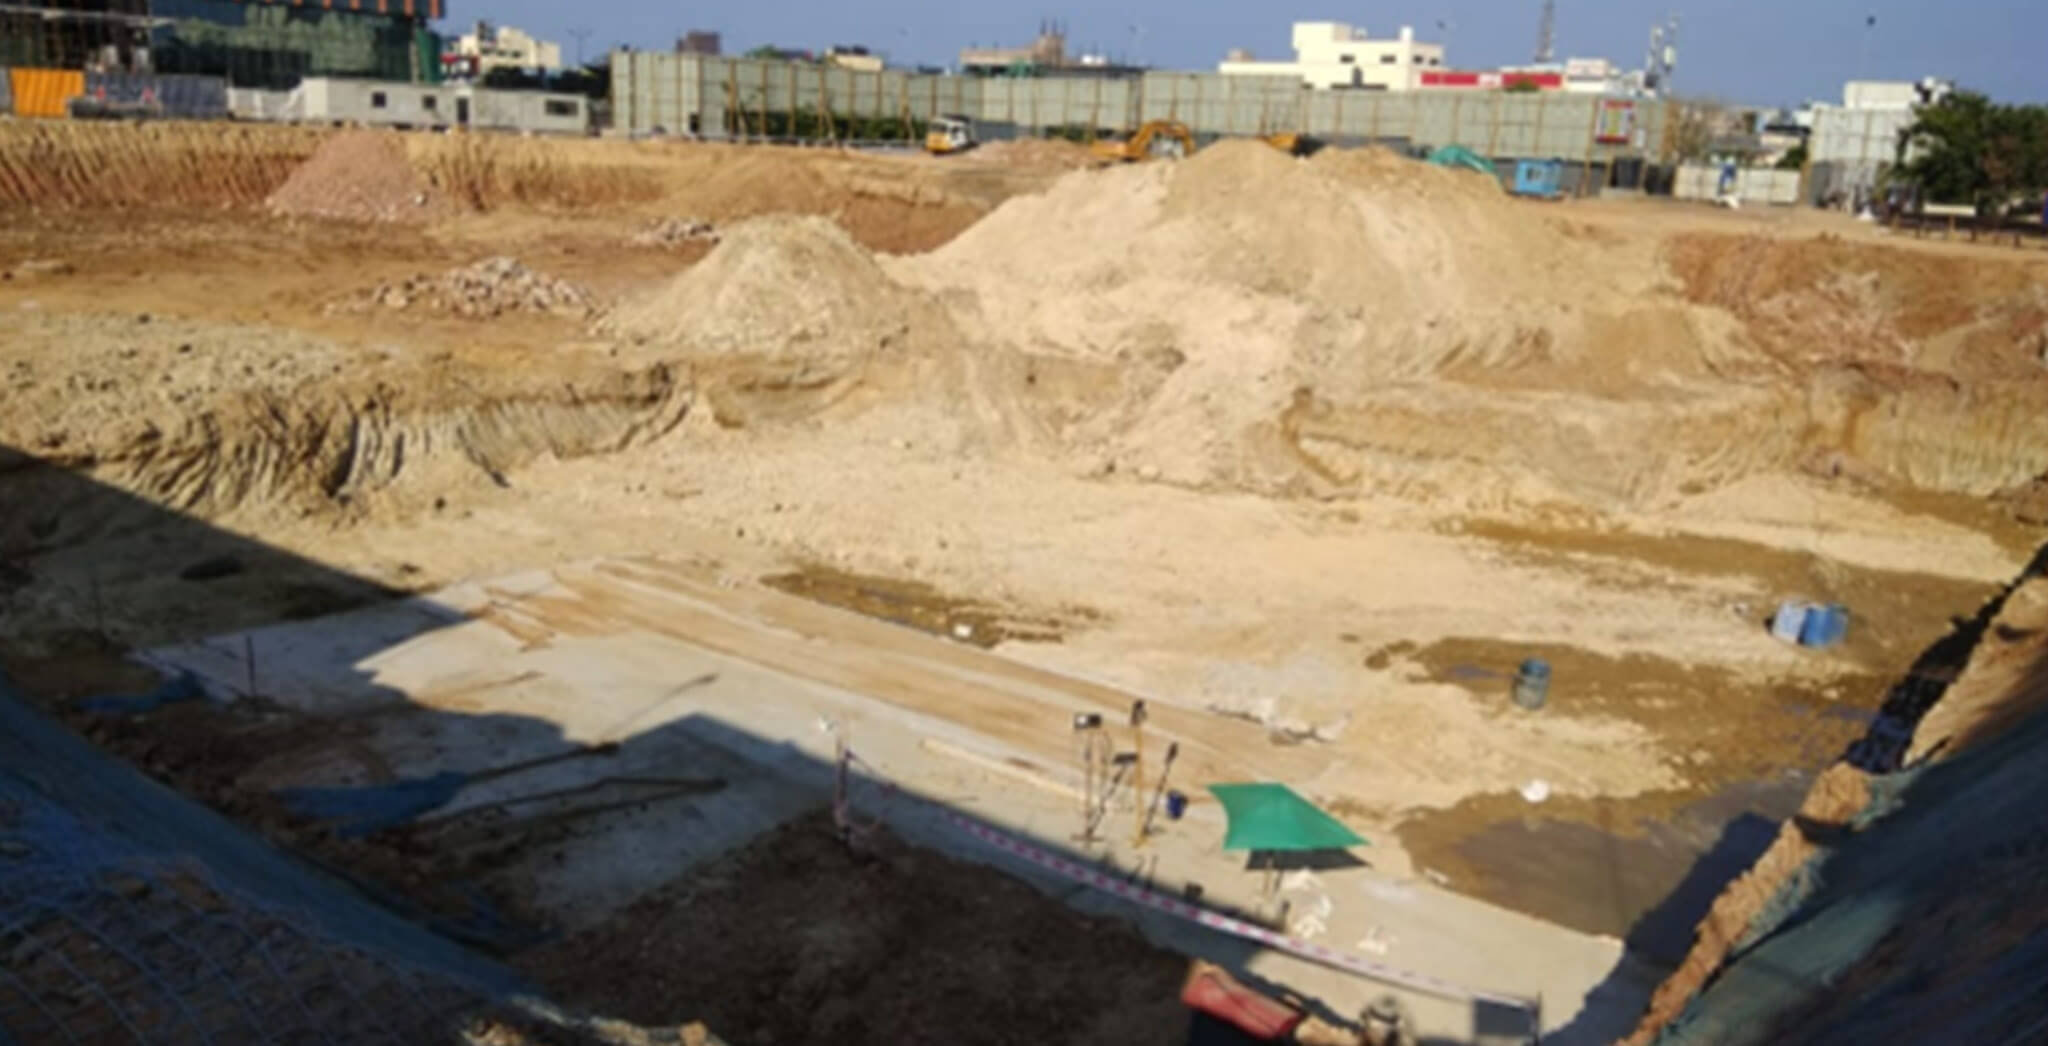 Apr 2020 - Tower Astra: Excavation work completed